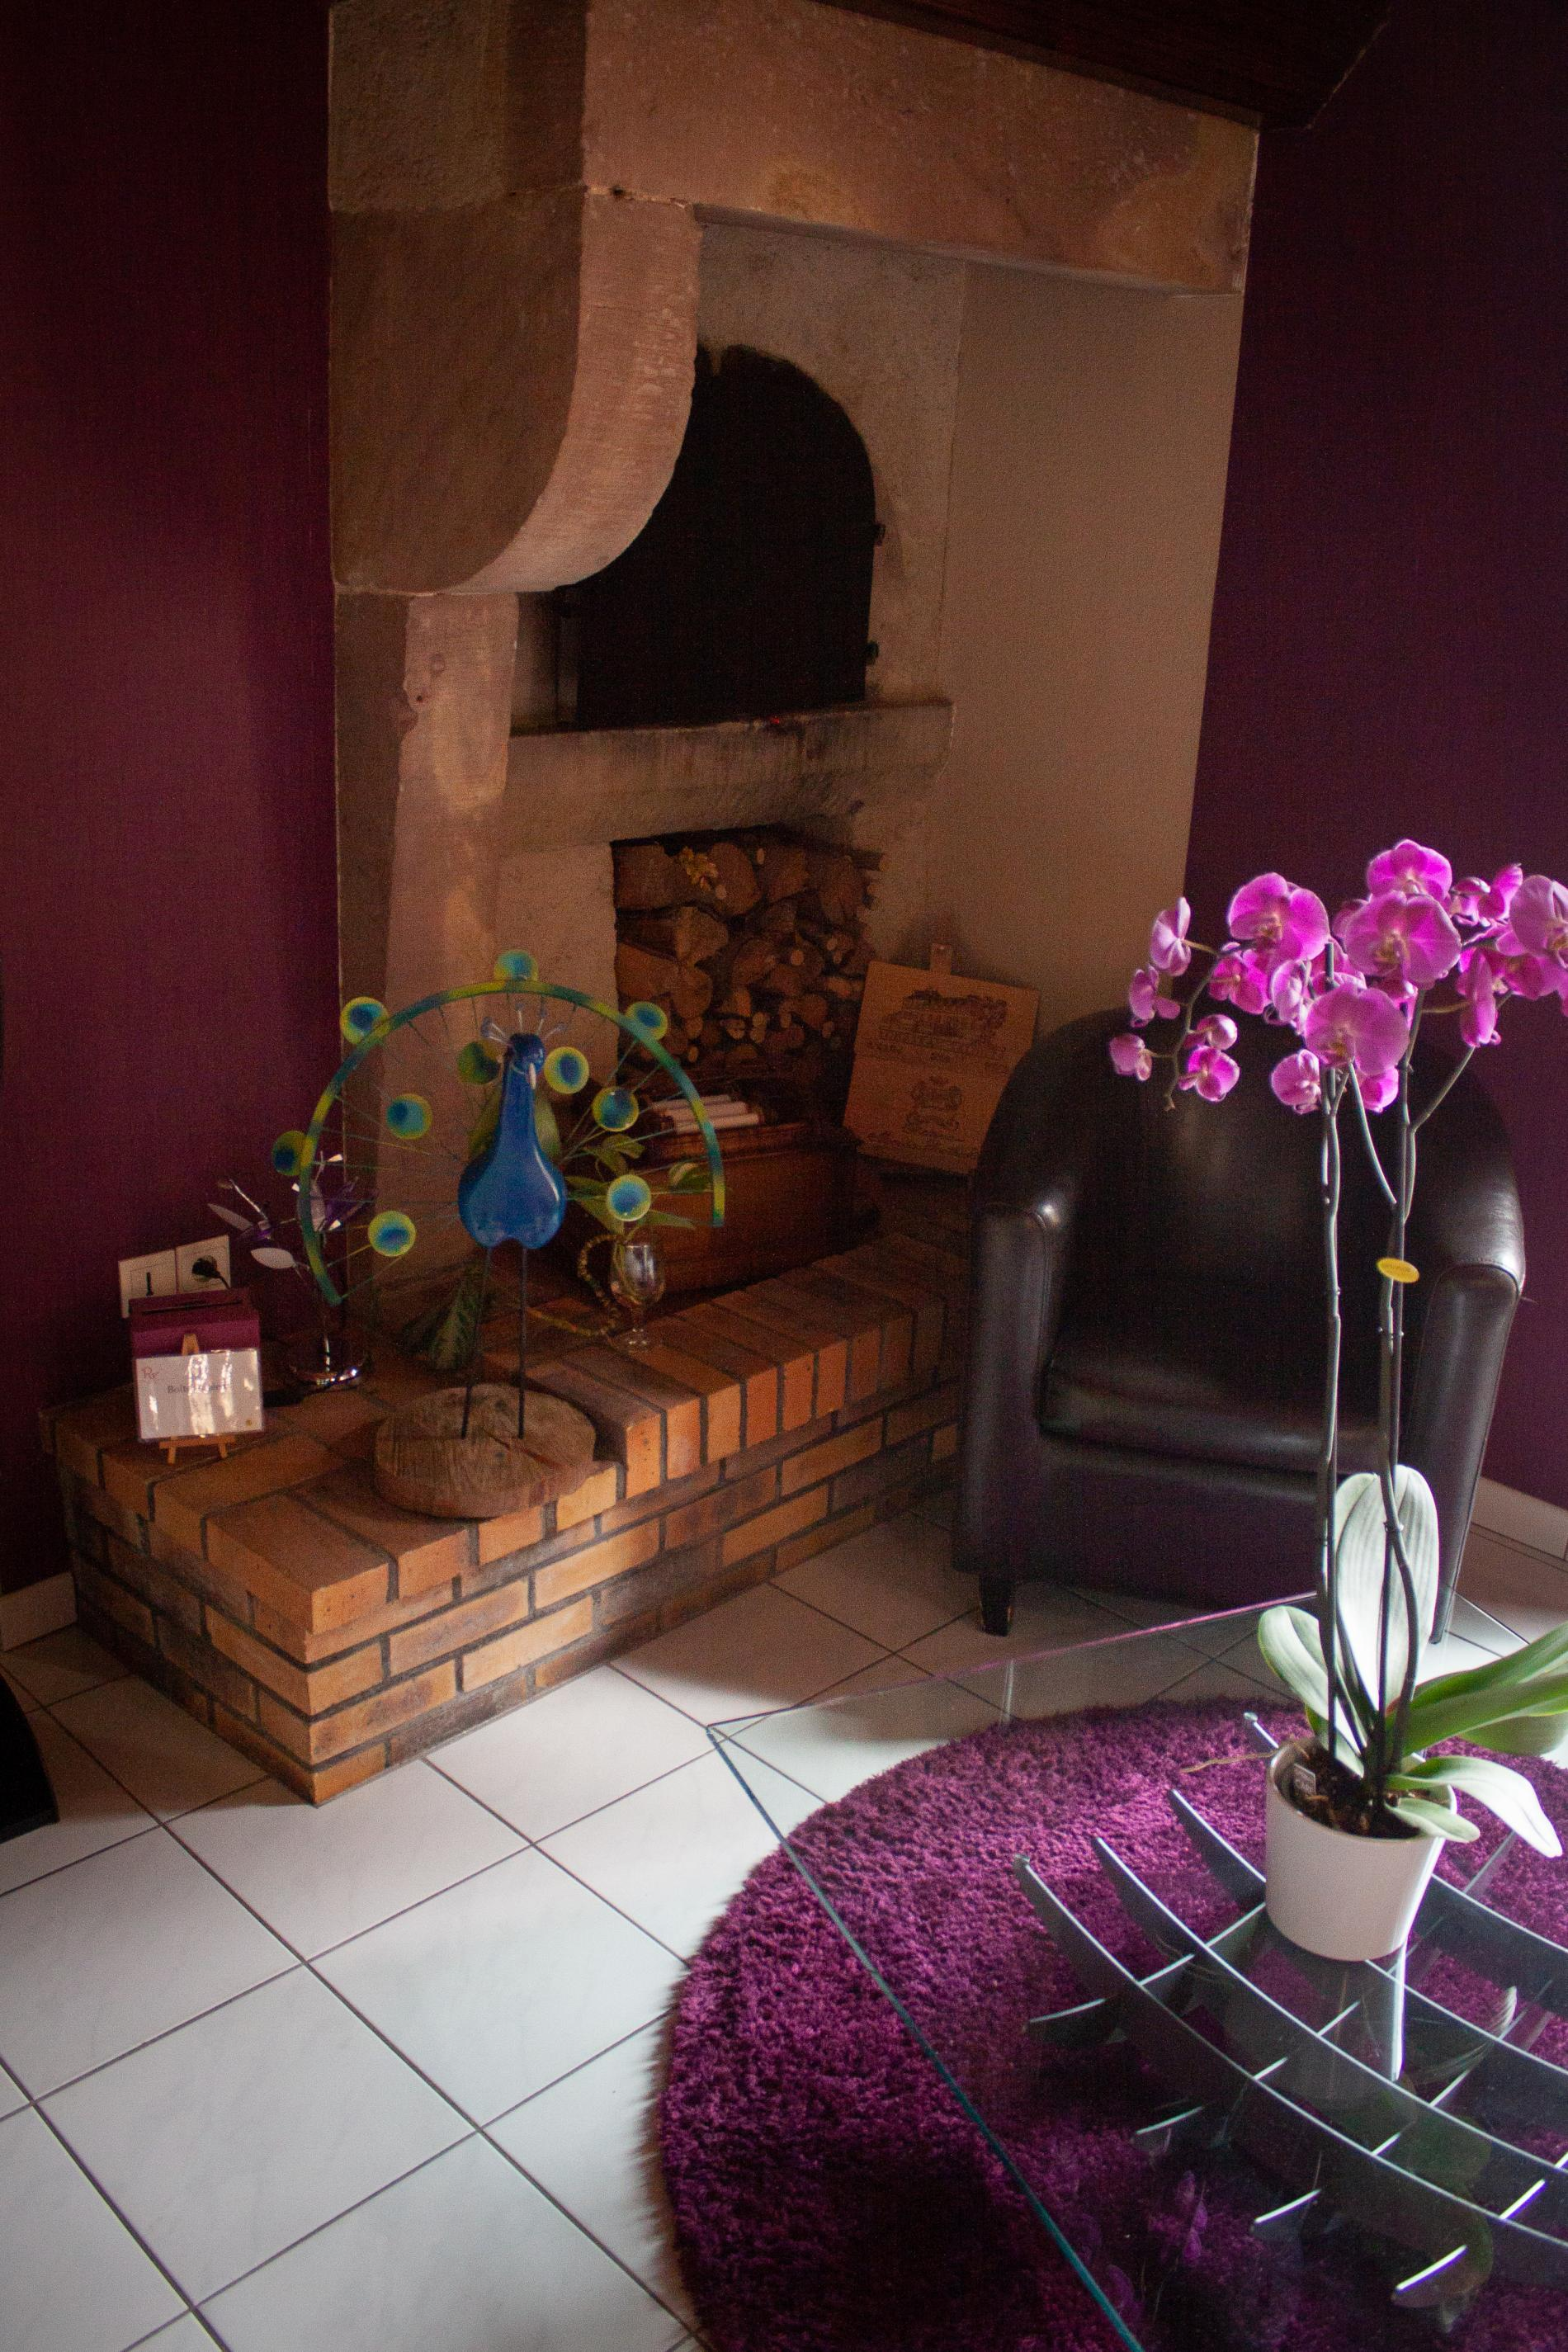 Hotel Spa At The Foot Of The Vosges In Saint Pierremont Le